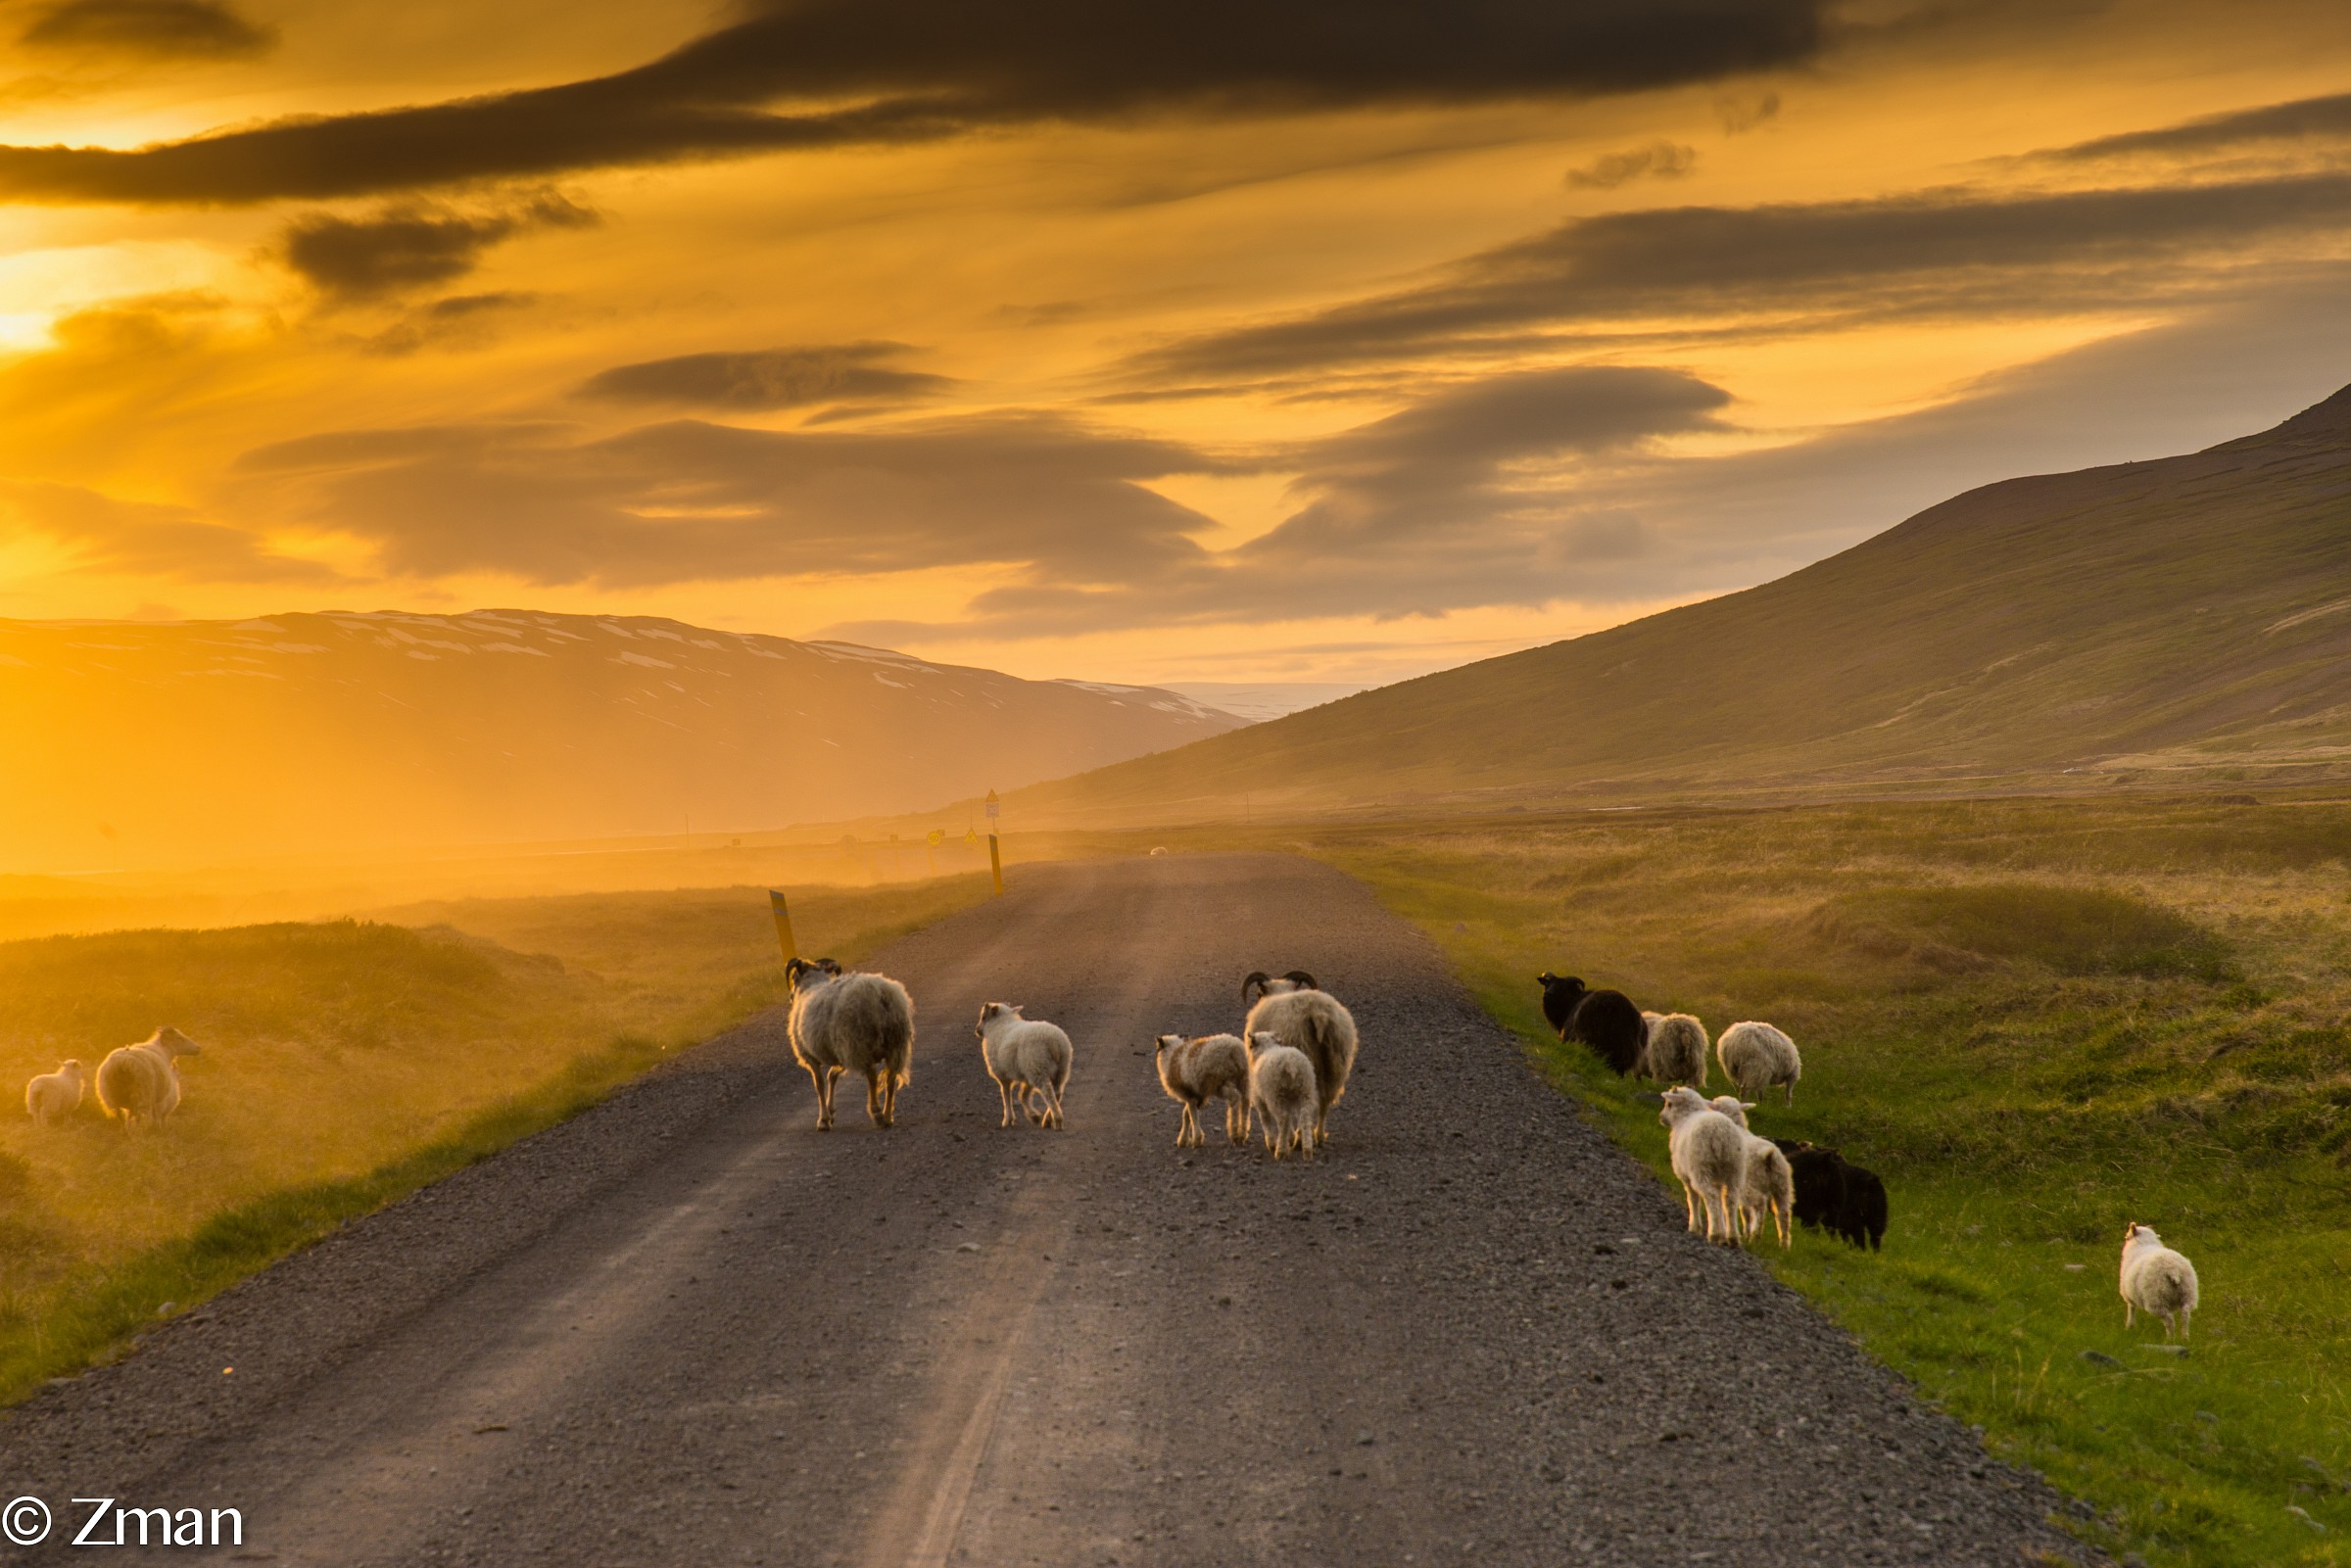 Sheep Crossing The Dirt Road...